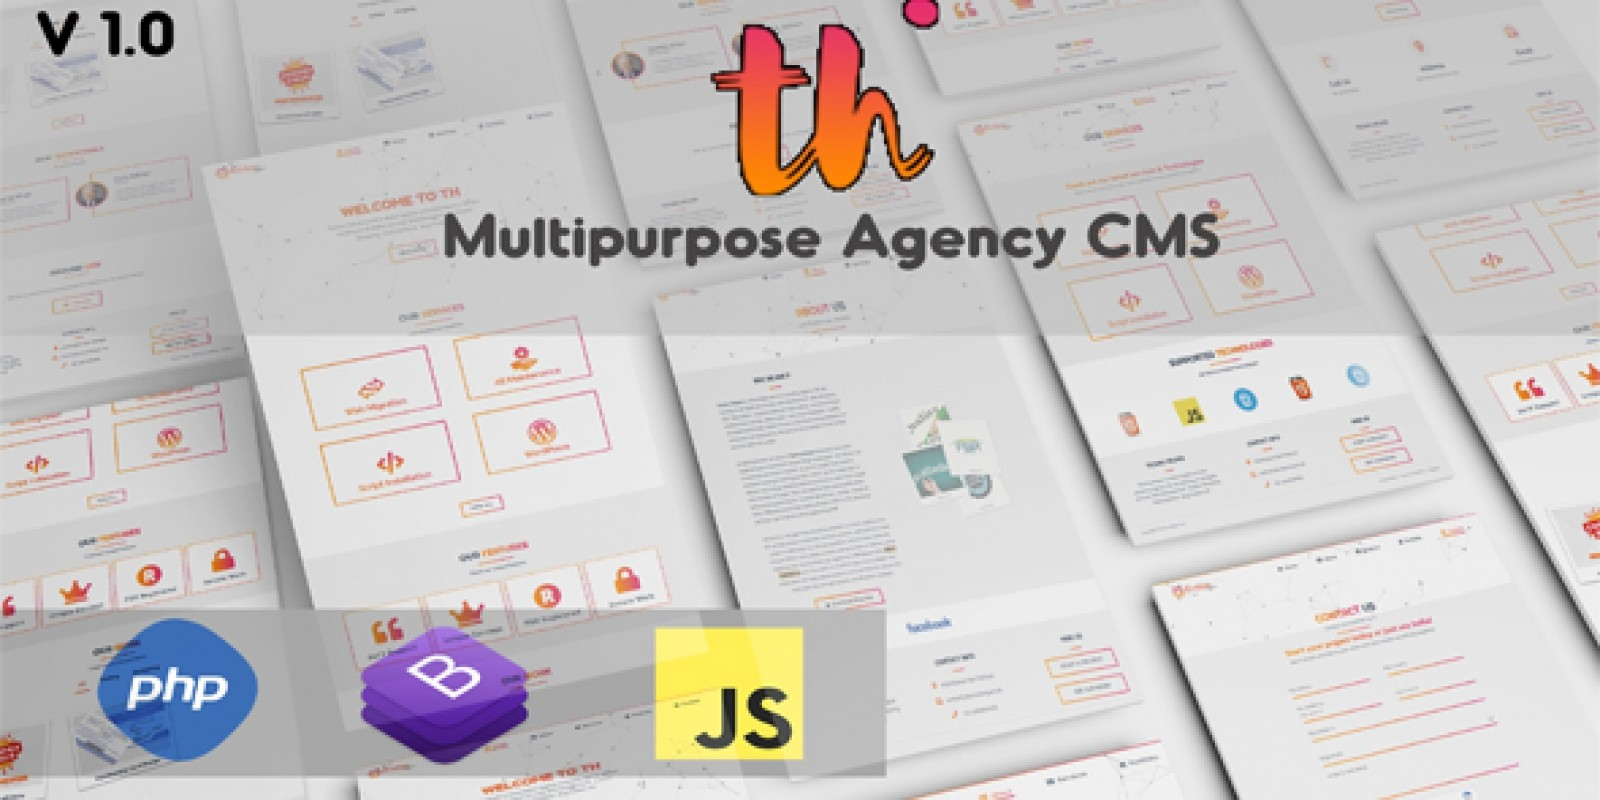 TH-Corporate Multipurpose Agency CMS